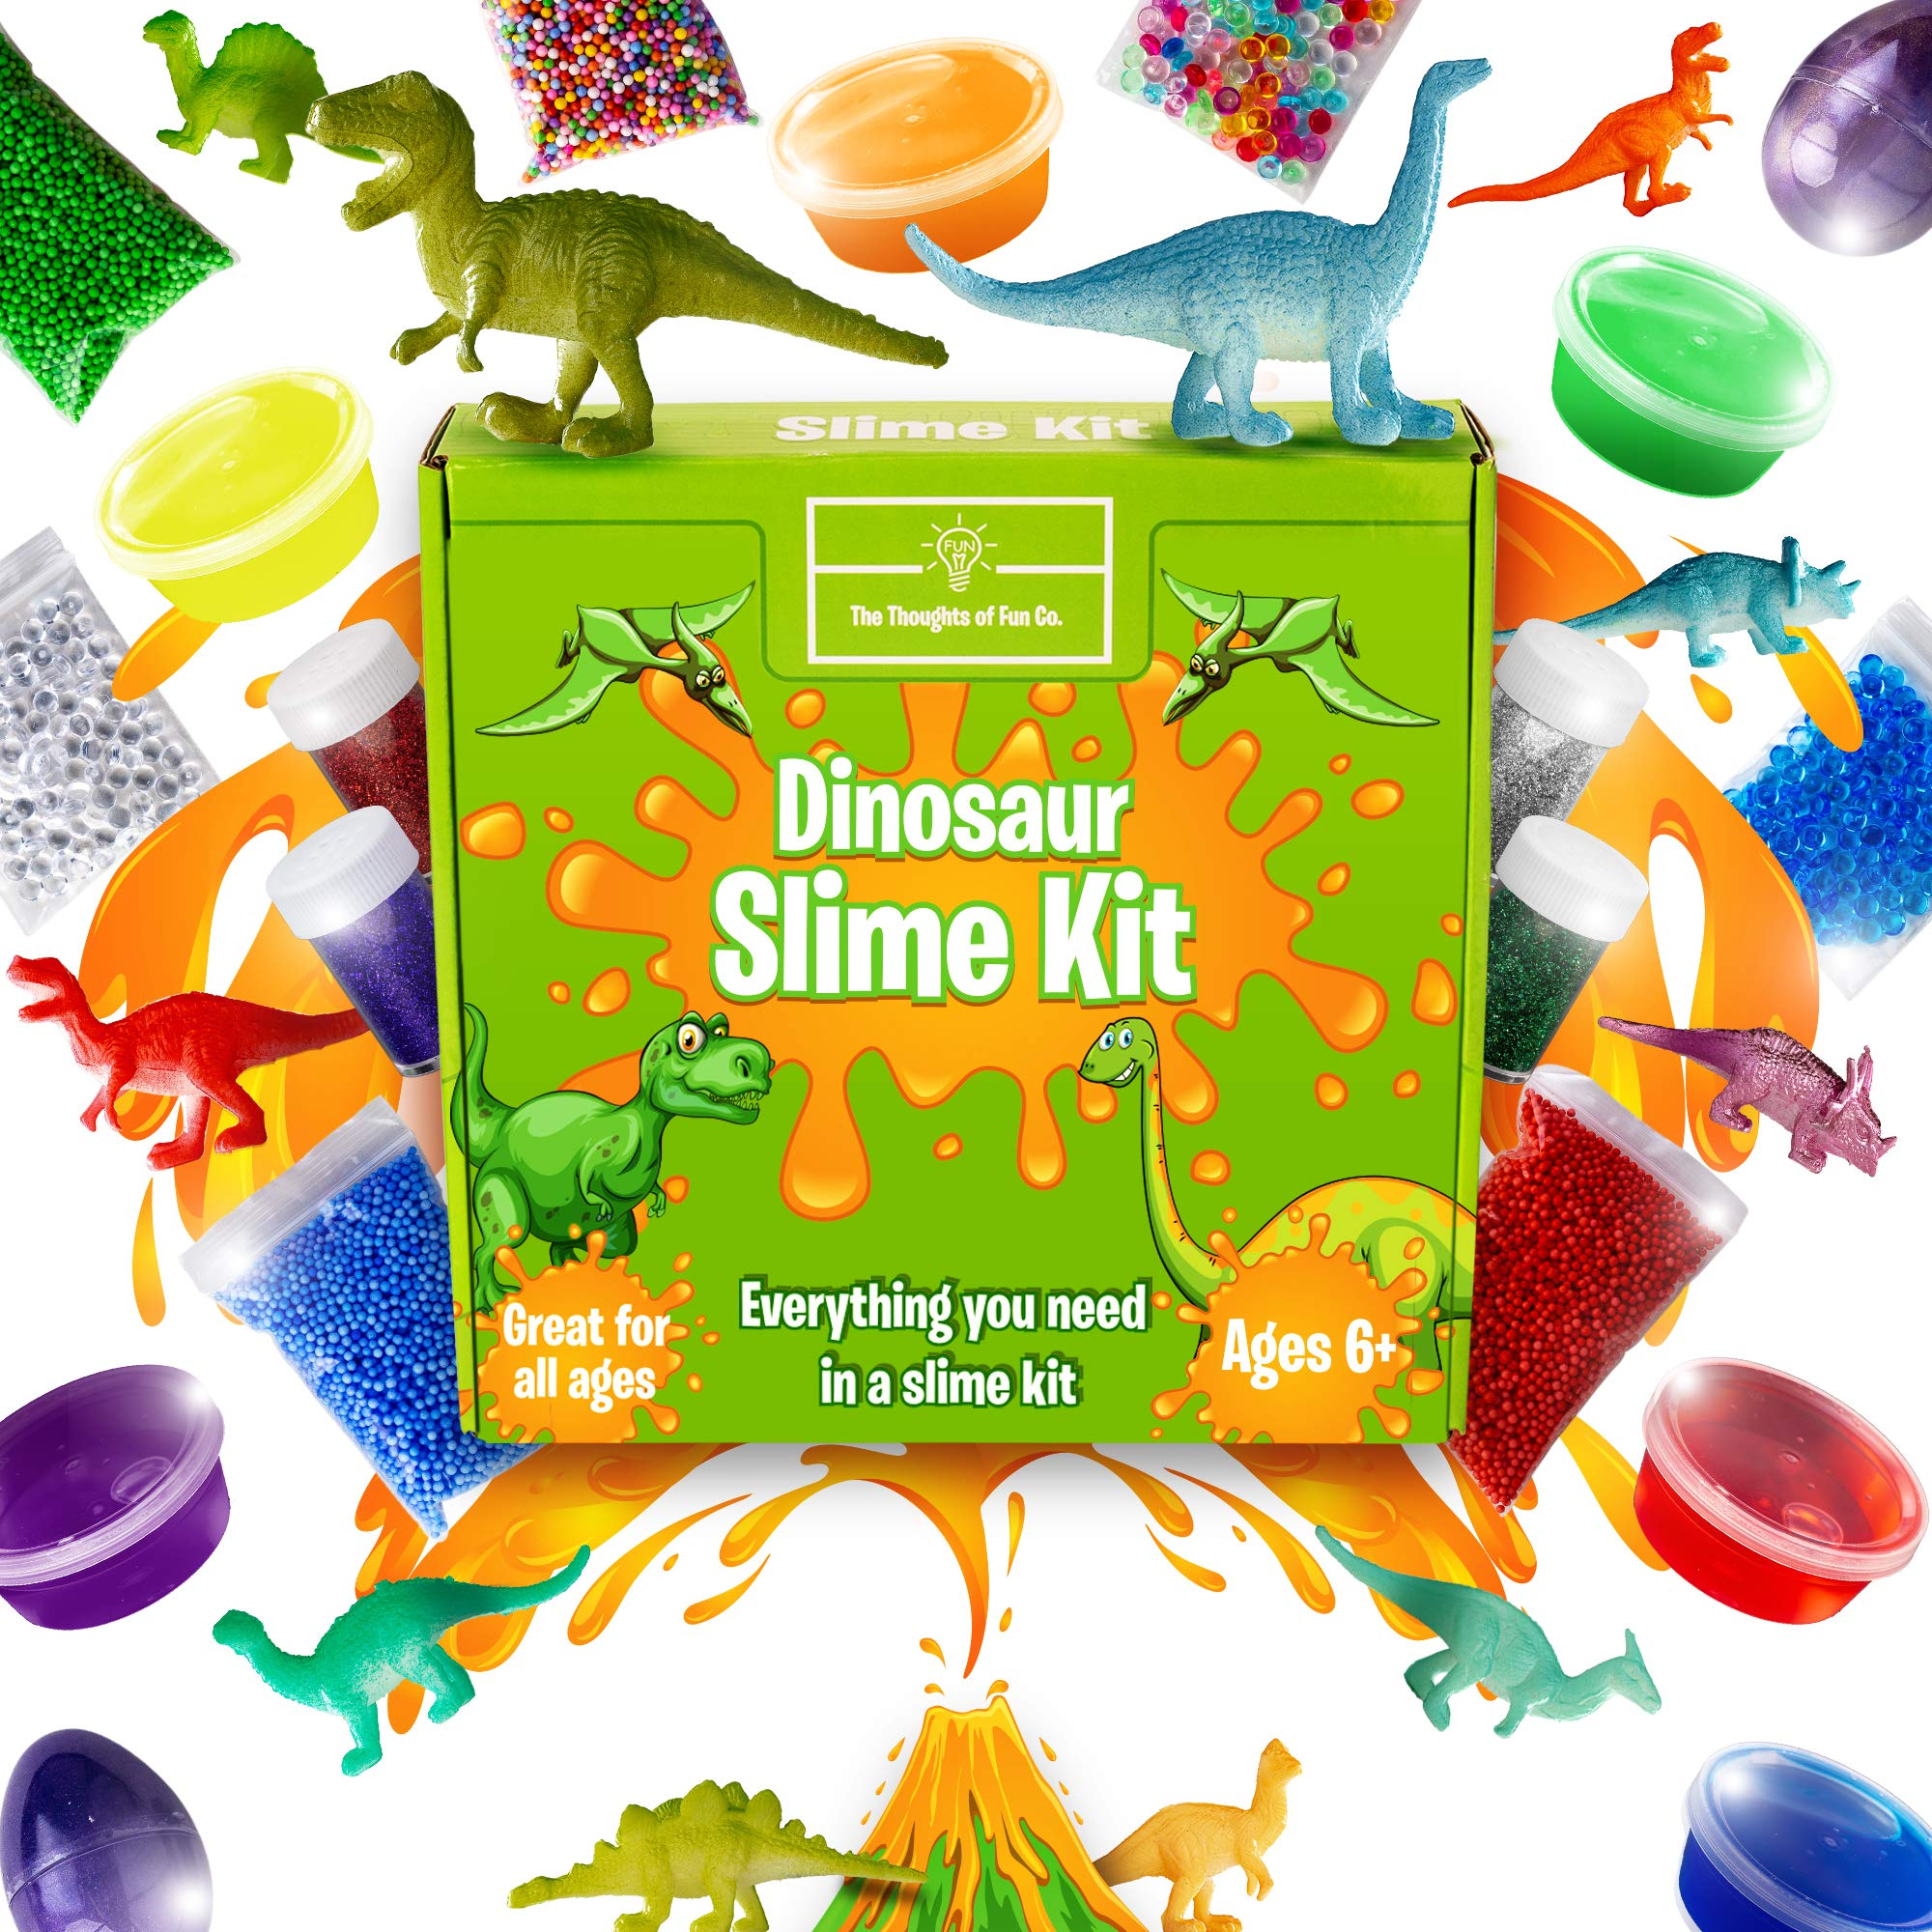 Stretchiest Dinosaur Slime Kit - Slime Kit for Boys, Easy-to-Clean Fun Slime for Kids! 12 Colors & Dino Pieces - Everything in ONE for Ultimate, Premade, DIY, Foamy, Stretchy Slime! 38pc